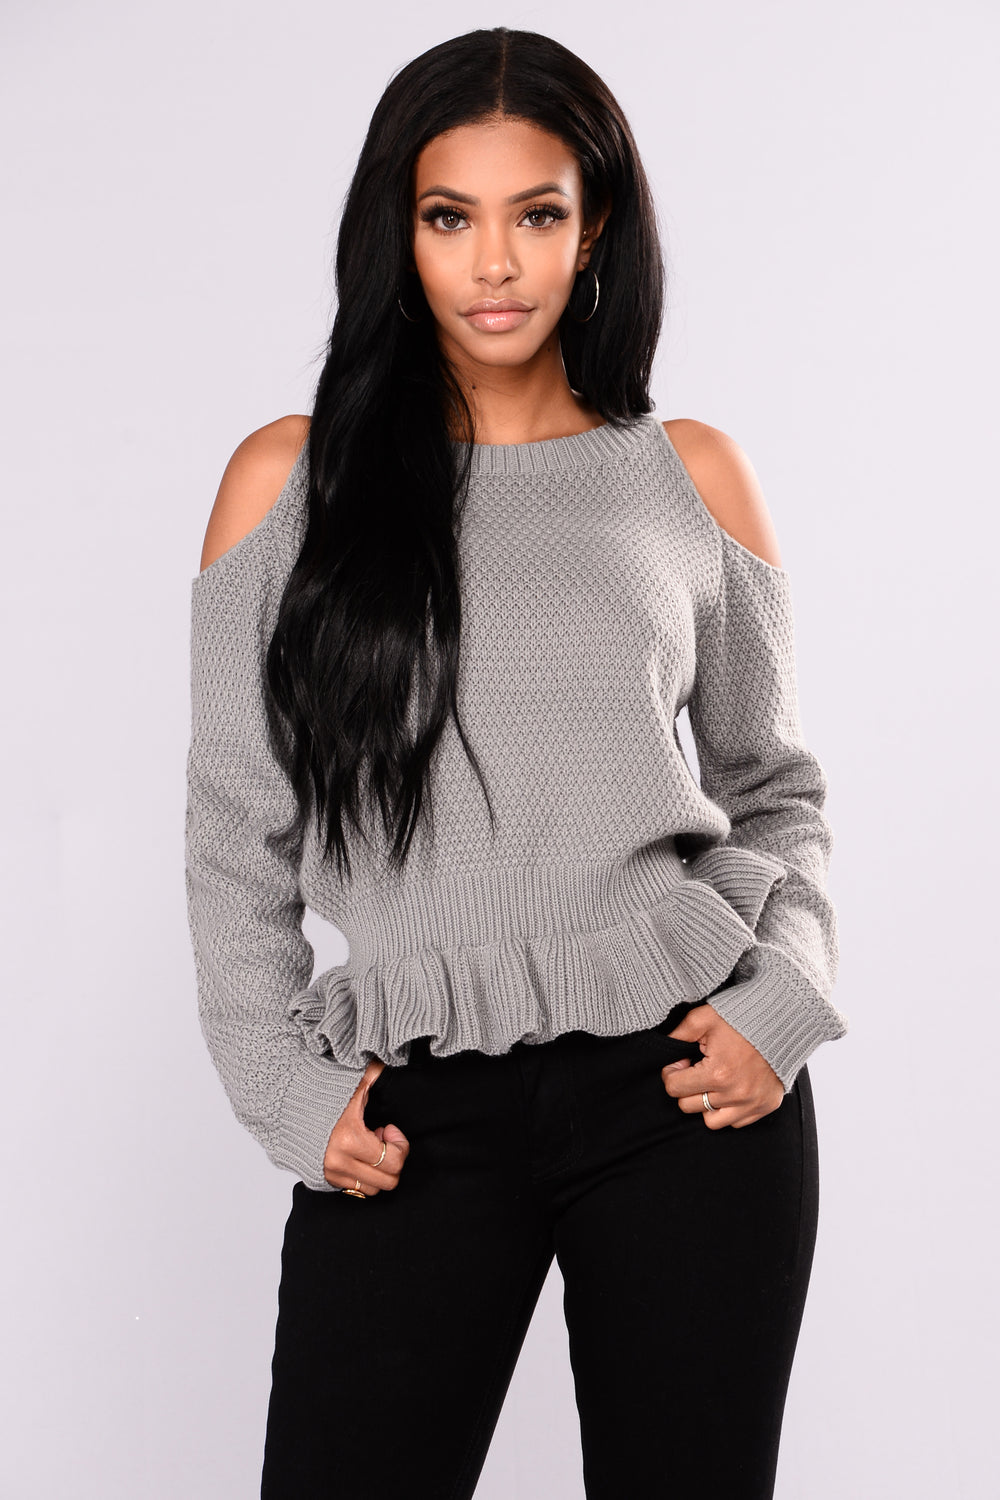 Simona Ruffle Sweater - Heather Grey